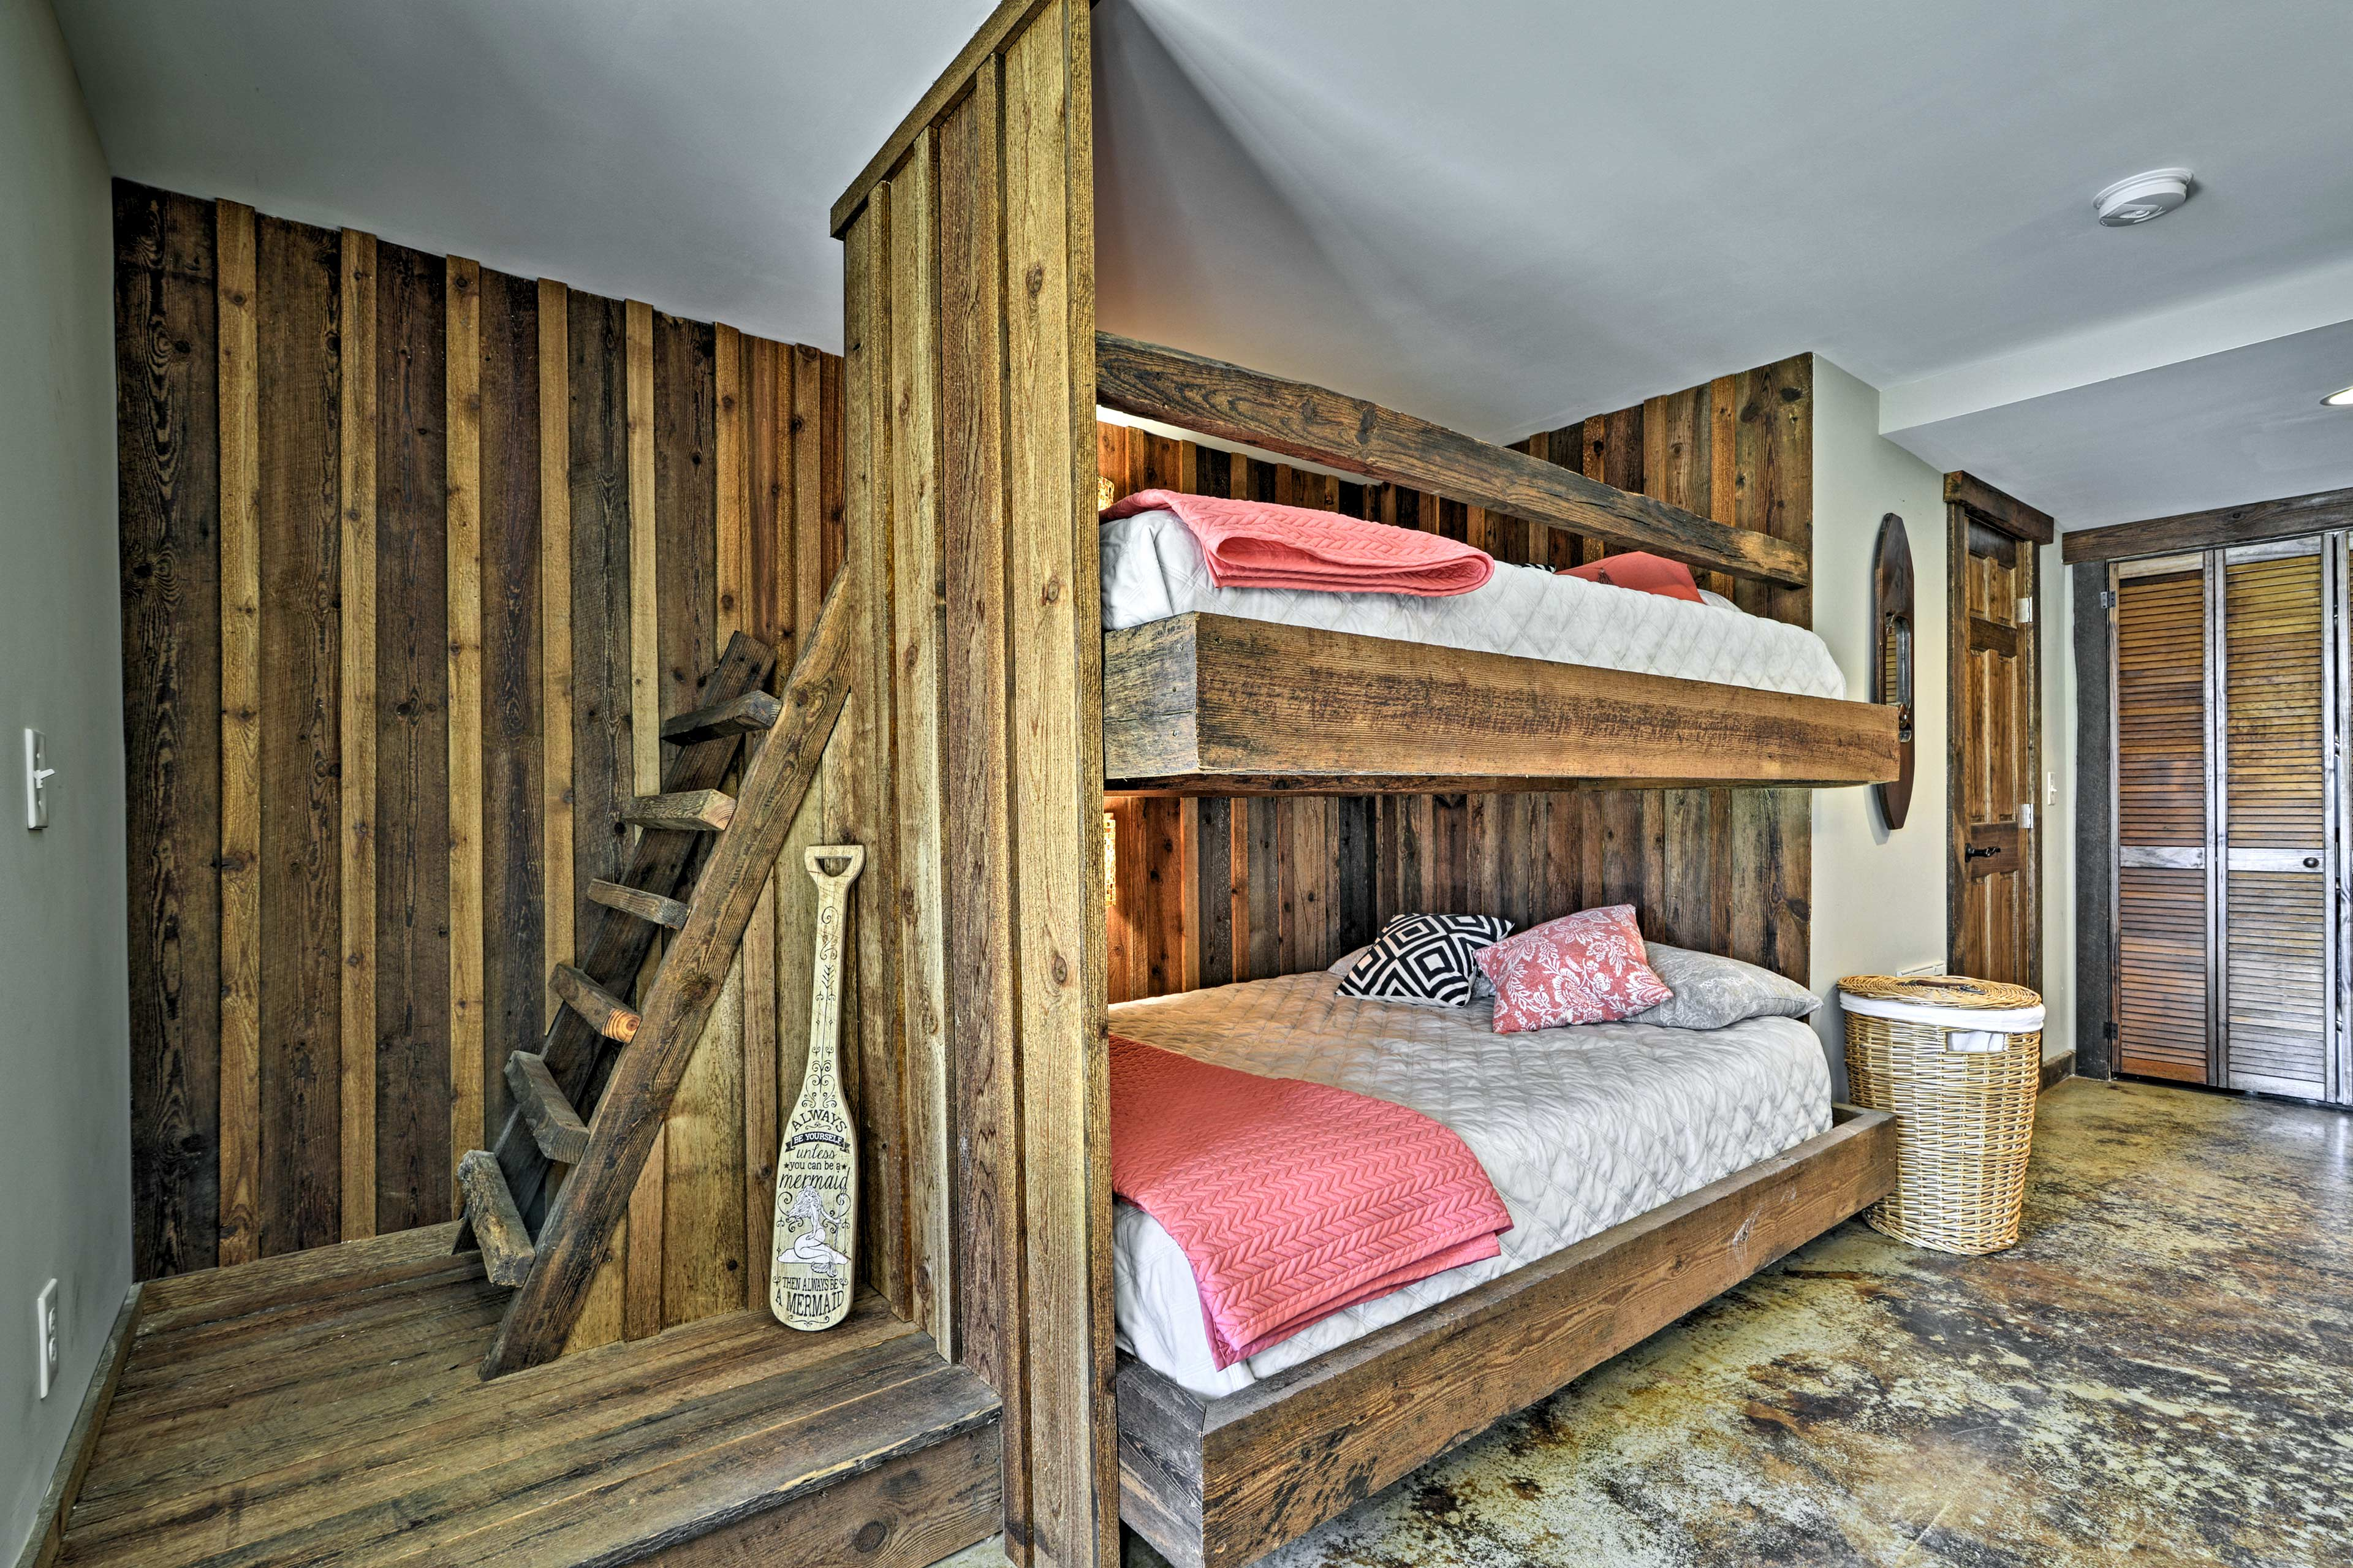 You'll find a set of built-in queen-over-queen bunk beds in this room.